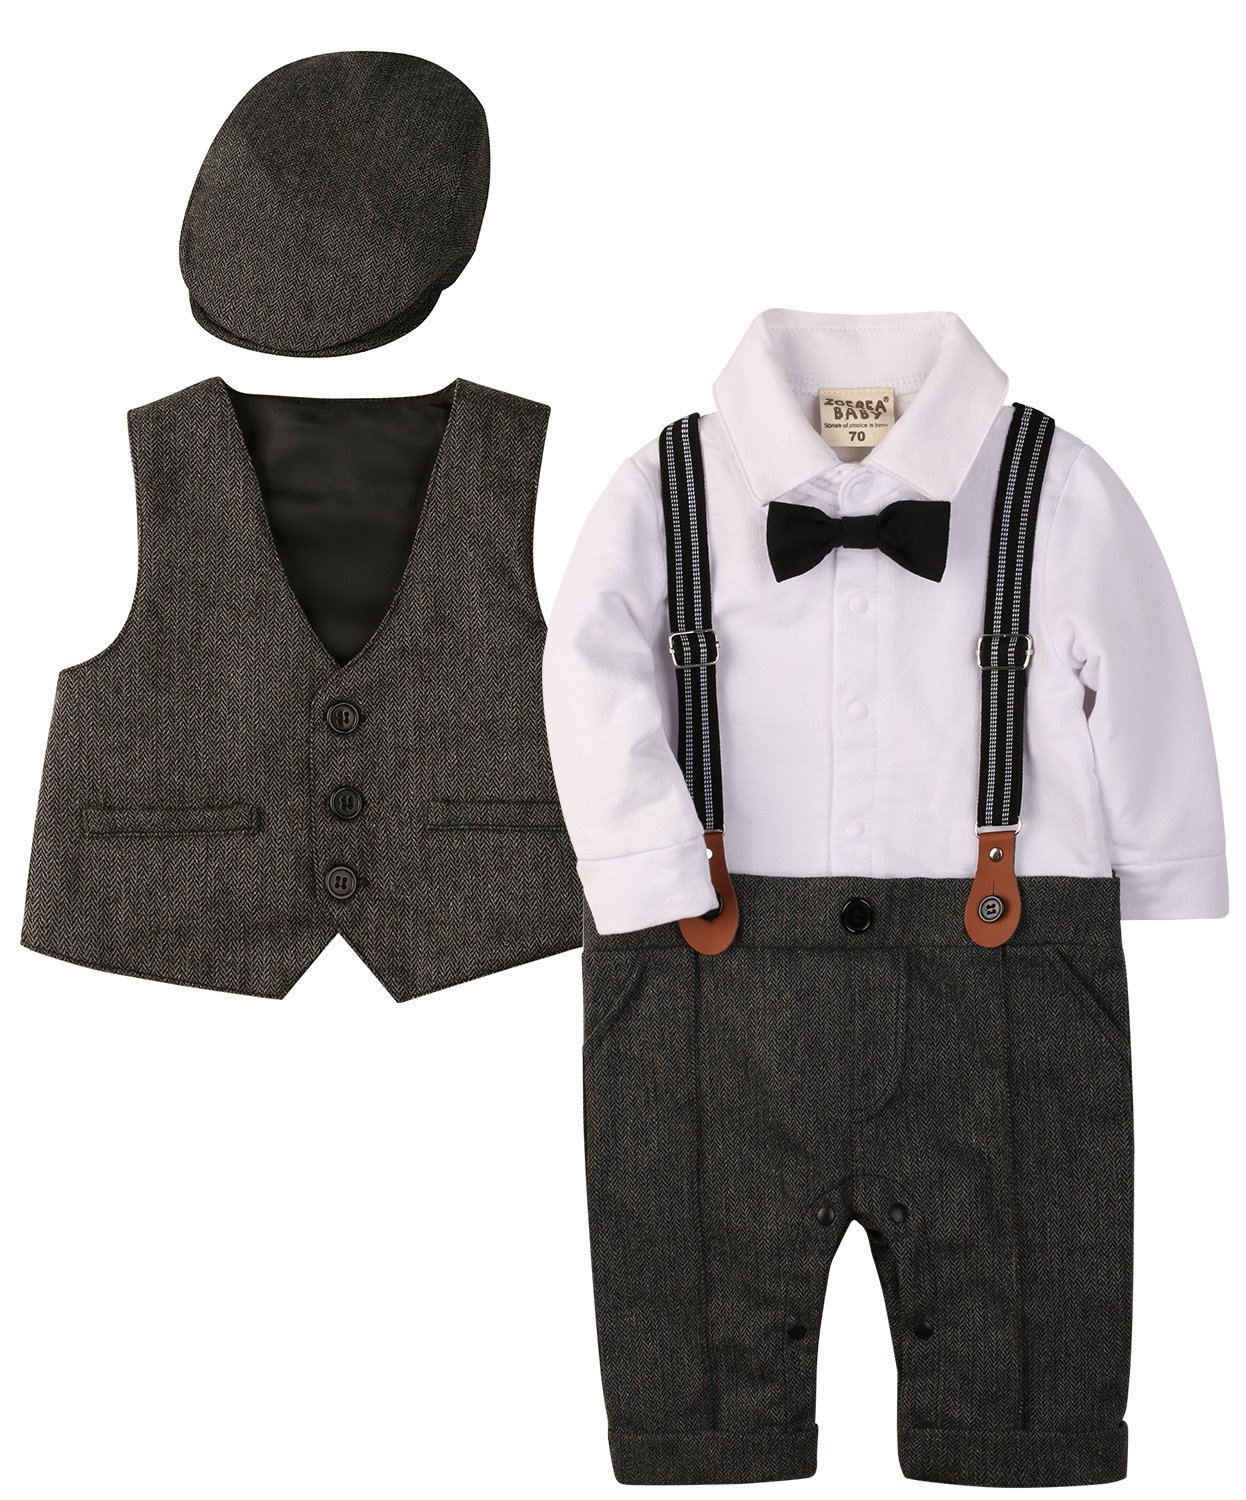 ZOEREA Baby Boy Outfits Set, 3pcs Long Sleeves Gentleman Jumpsuit & Vest Coat & Berets Hat with Bow Tie (Grey, Label 70)